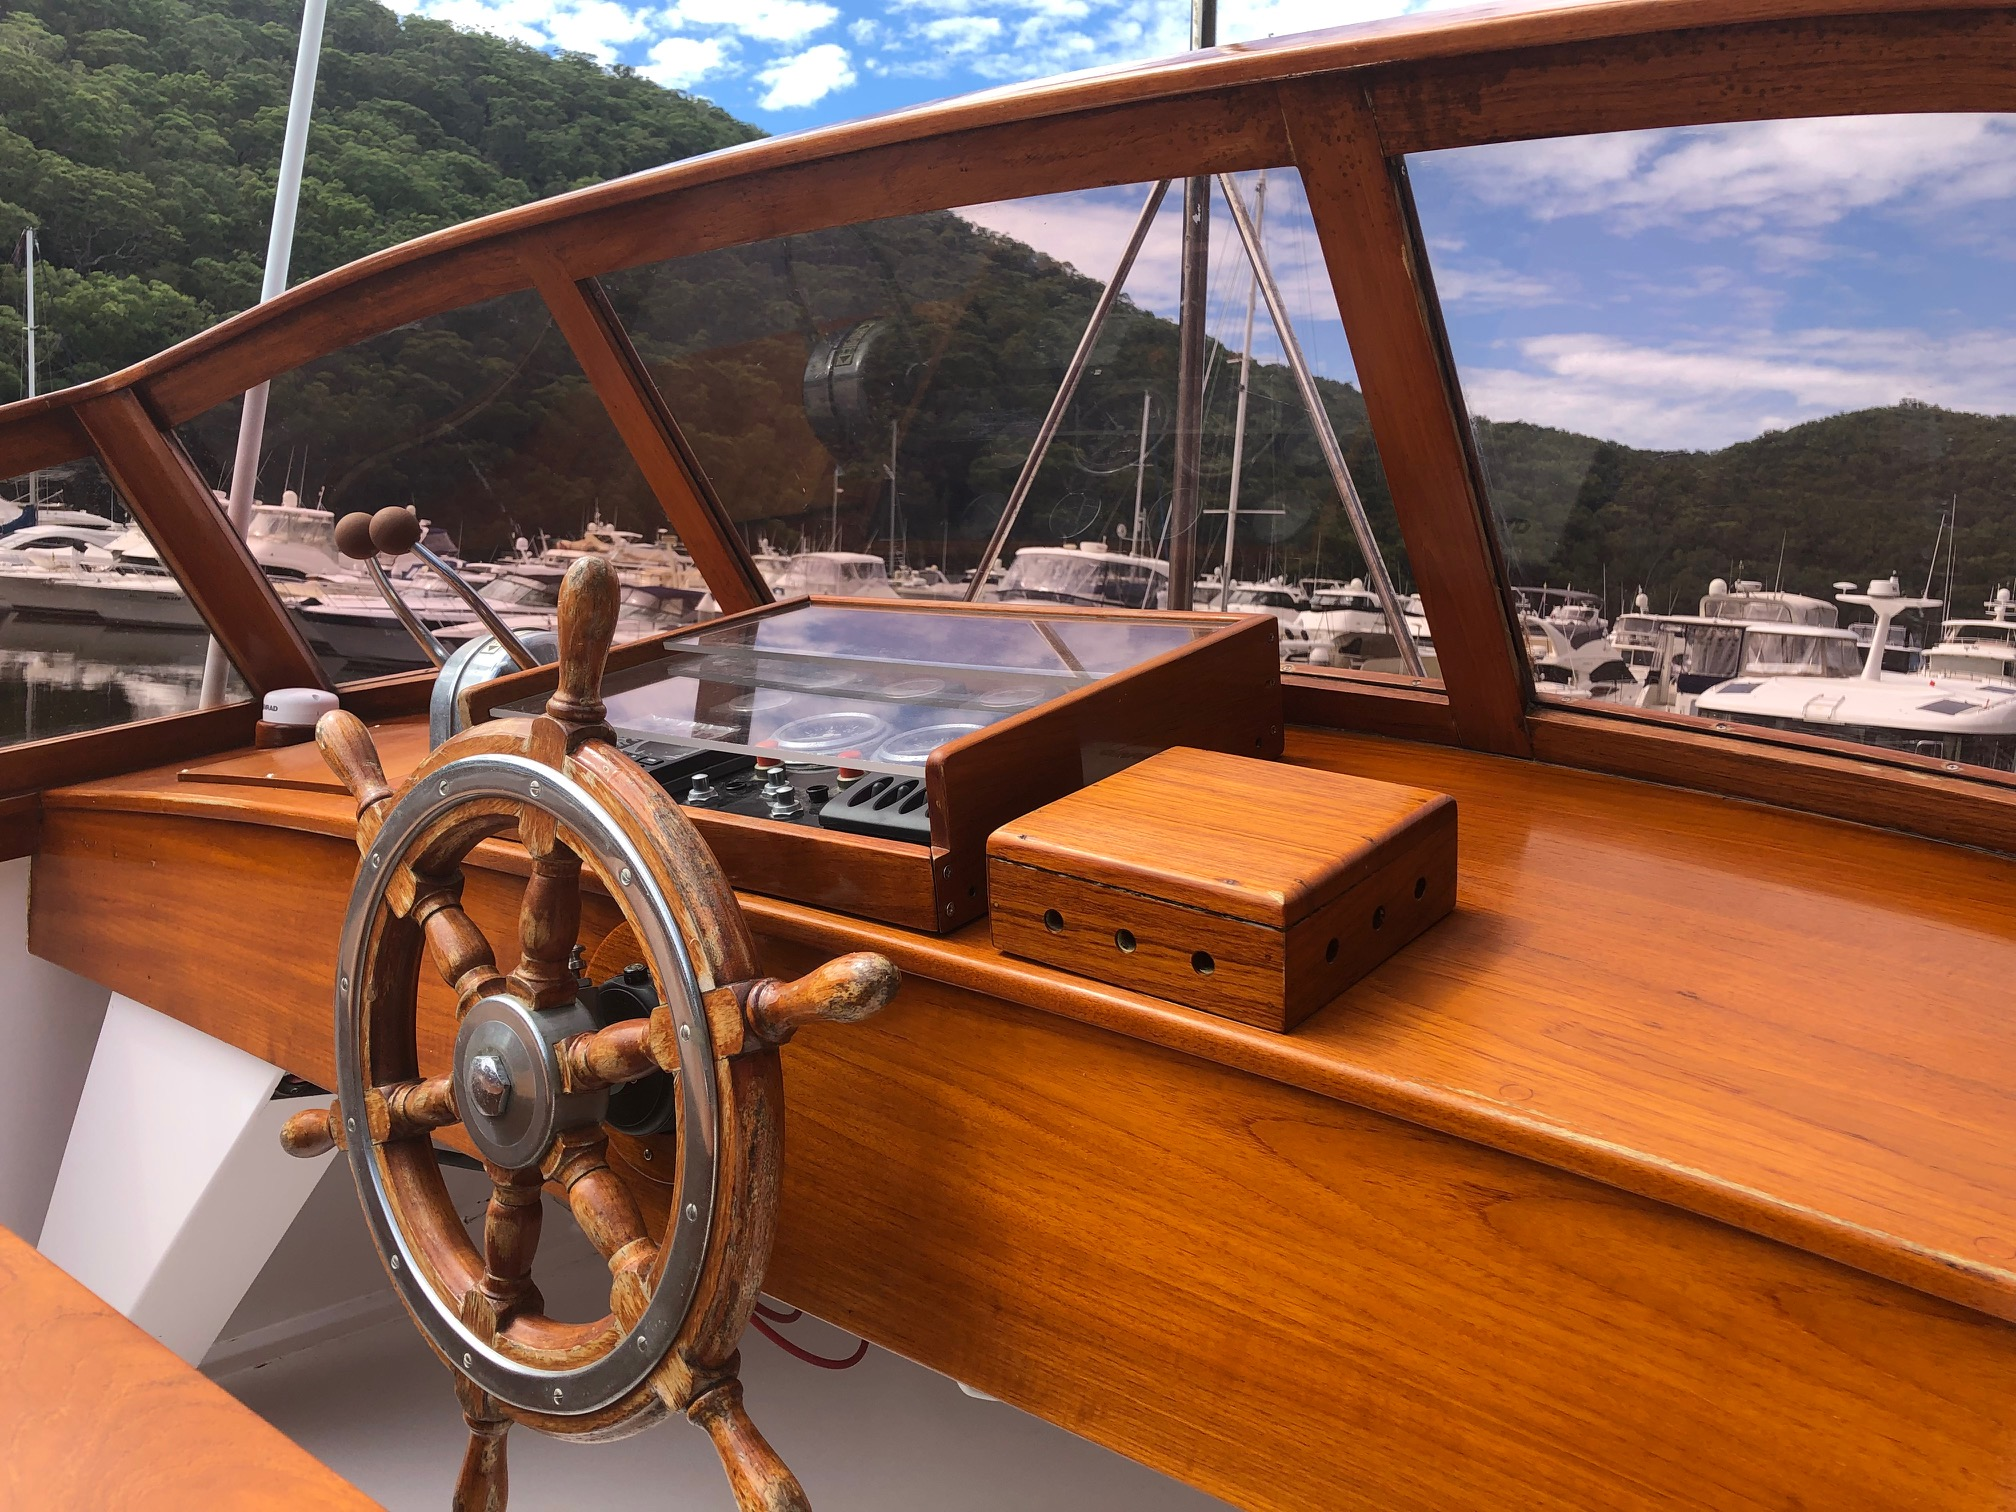 Halvorsen 40 5th Share - Classic Boat Share Flagship